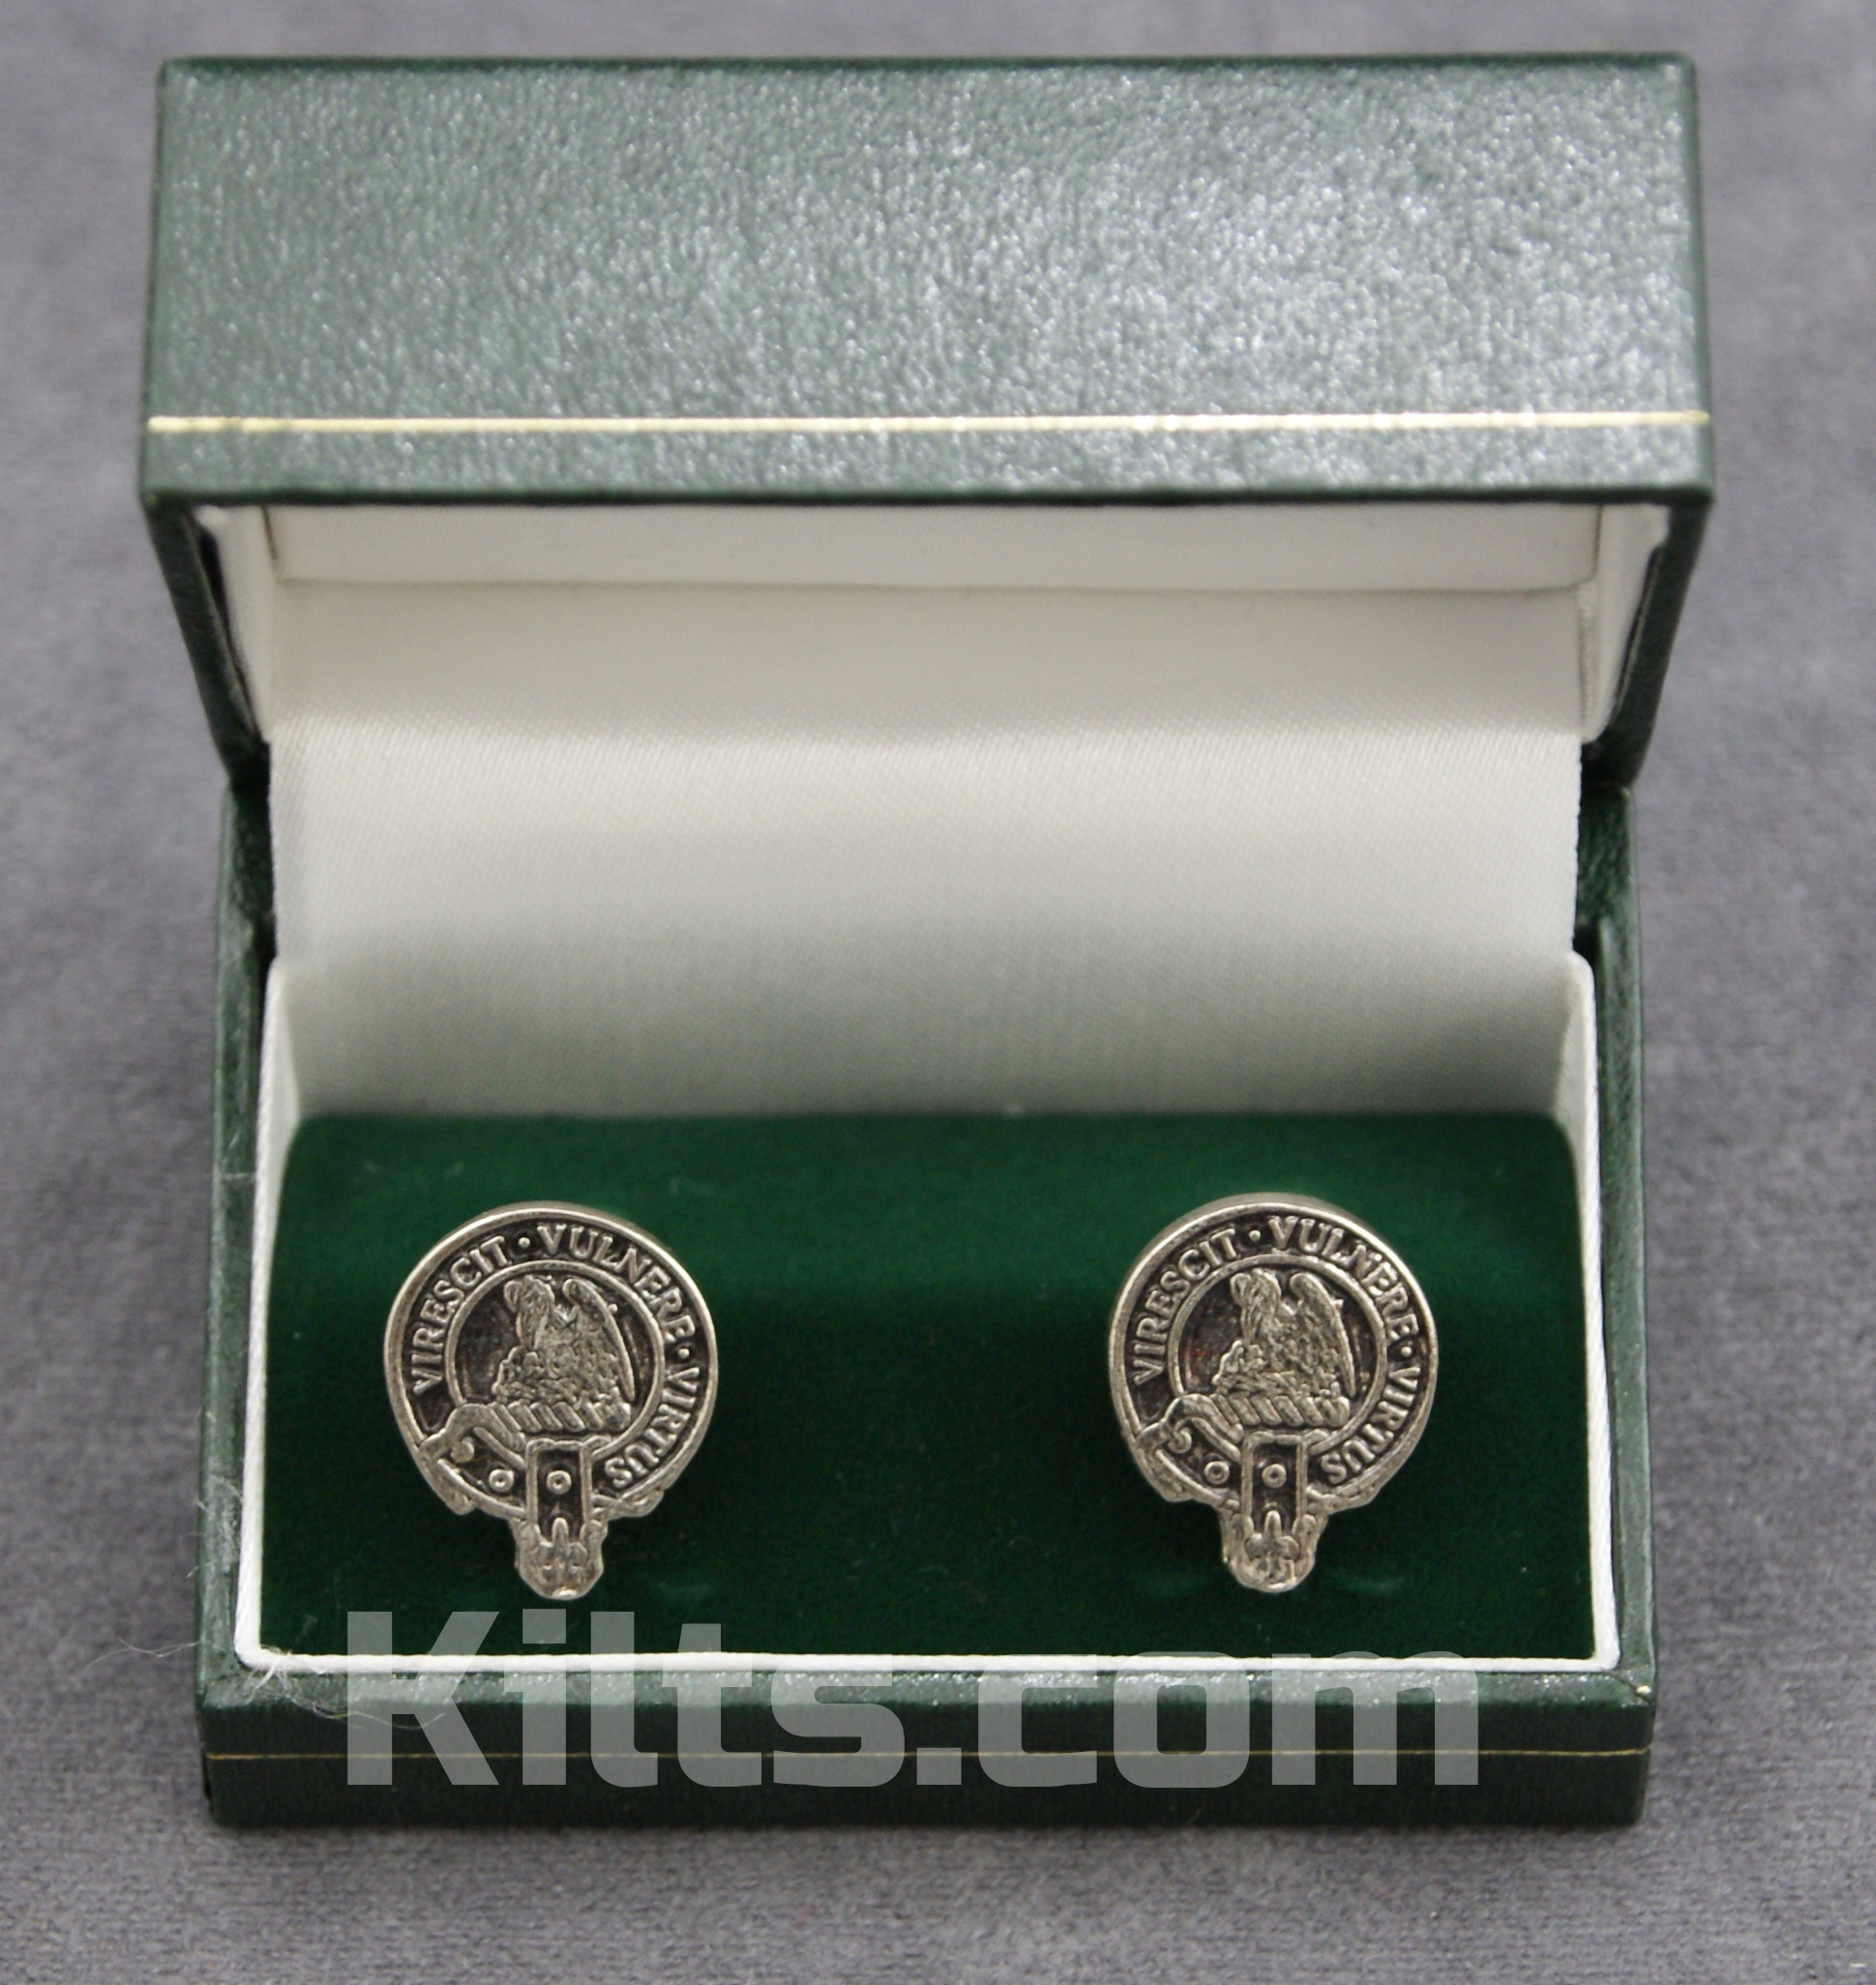 Check out our Scottish Clan Crest Cuff Links. If you are looking for personalised Scottish Cufflinks, these are the ones for you.